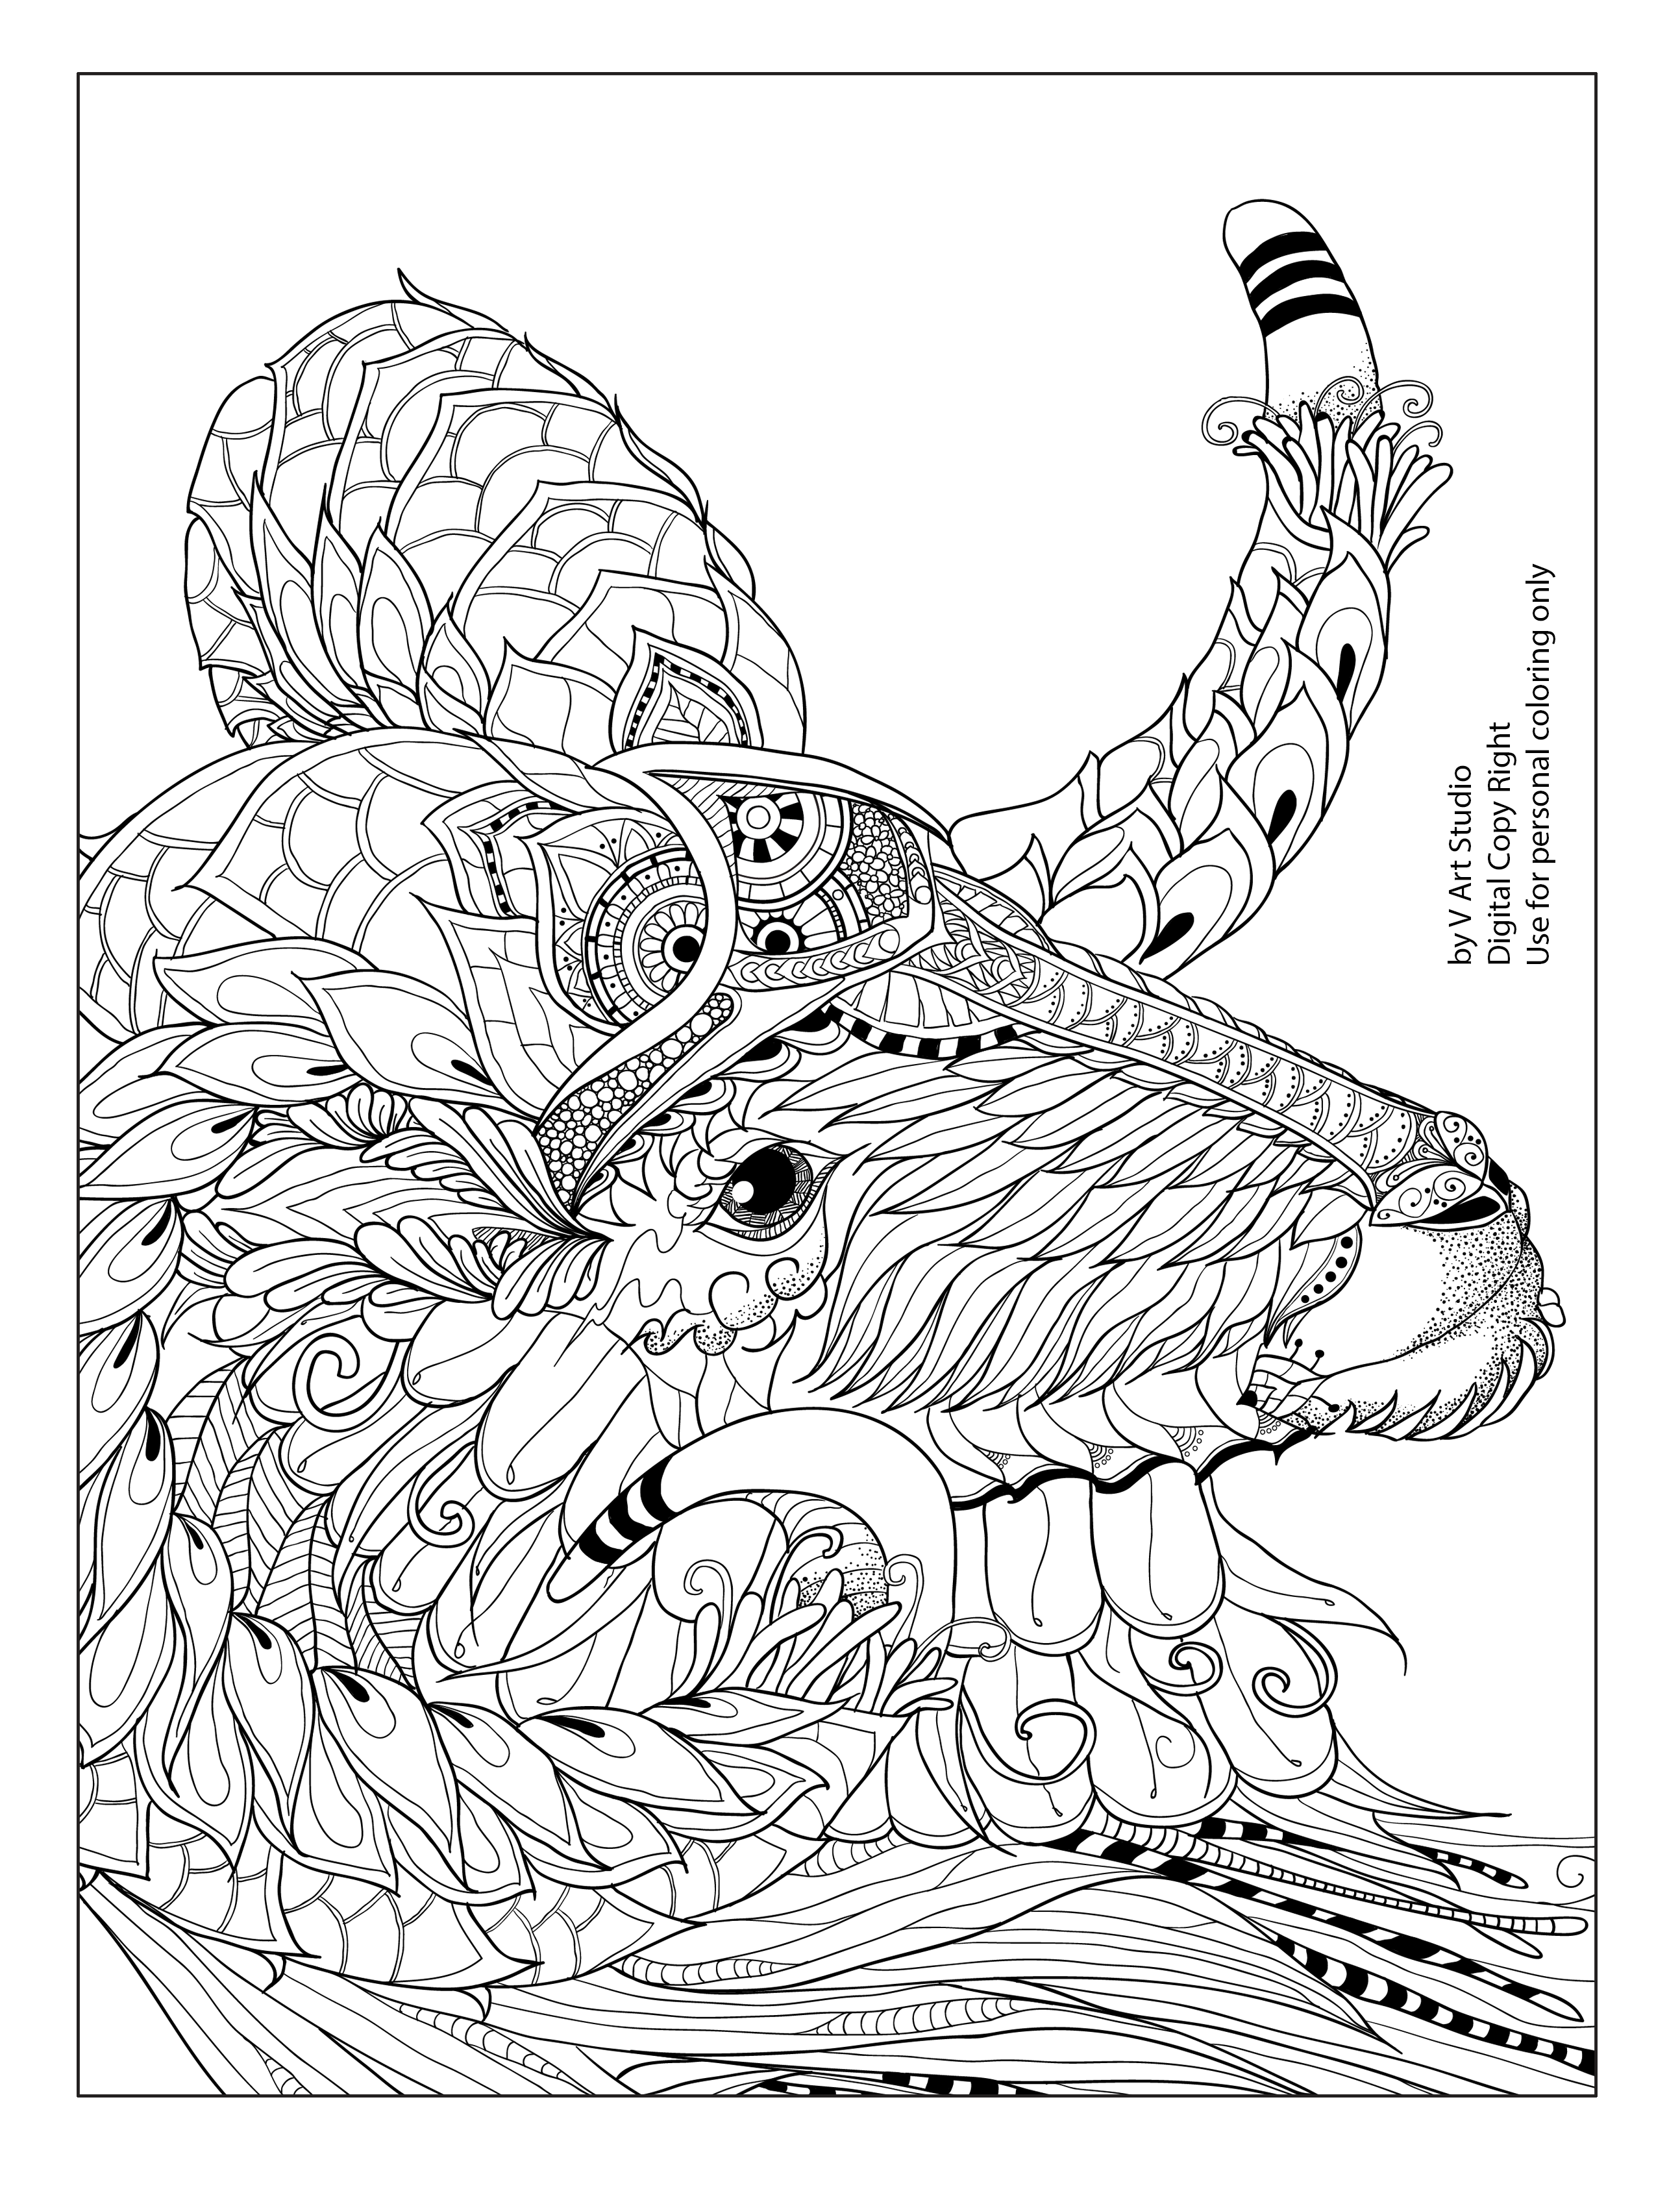 - Free Sample Coloring Page From Big Horn Collection Coloring Book